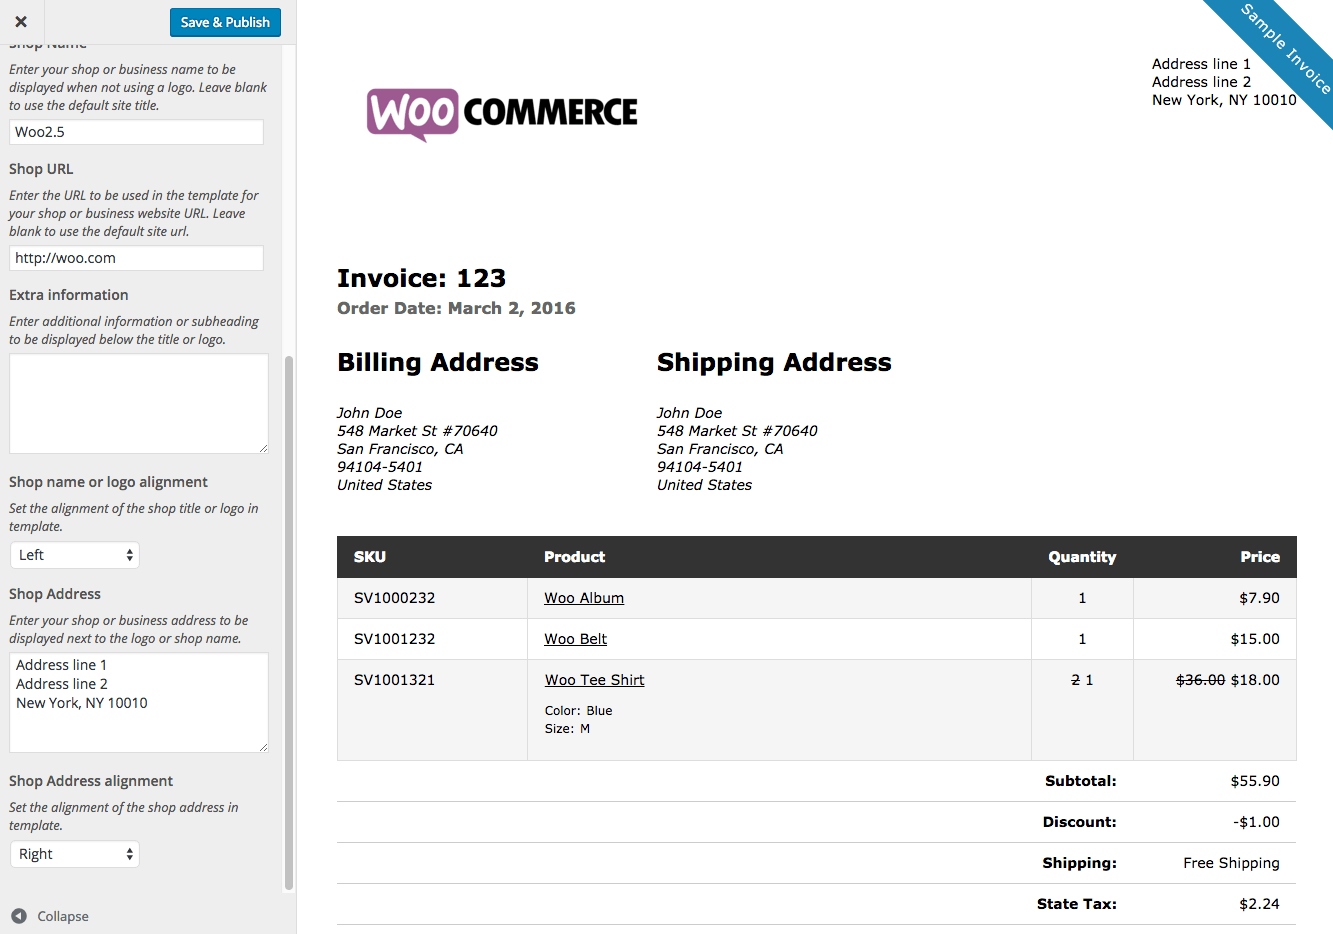 Carsforlessus  Seductive Woocommerce Print Invoices Amp Packing Lists  Woocommerce Docs With Glamorous Woocommerce Print Invoices  Packing Lists Customizer With Cute Invoice Price Also Invoiced In Addition Printable Invoice And Proforma Invoice As Well As Google Invoice Additionally Create An Invoice From Docswoocommercecom With Carsforlessus  Glamorous Woocommerce Print Invoices Amp Packing Lists  Woocommerce Docs With Cute Woocommerce Print Invoices  Packing Lists Customizer And Seductive Invoice Price Also Invoiced In Addition Printable Invoice From Docswoocommercecom